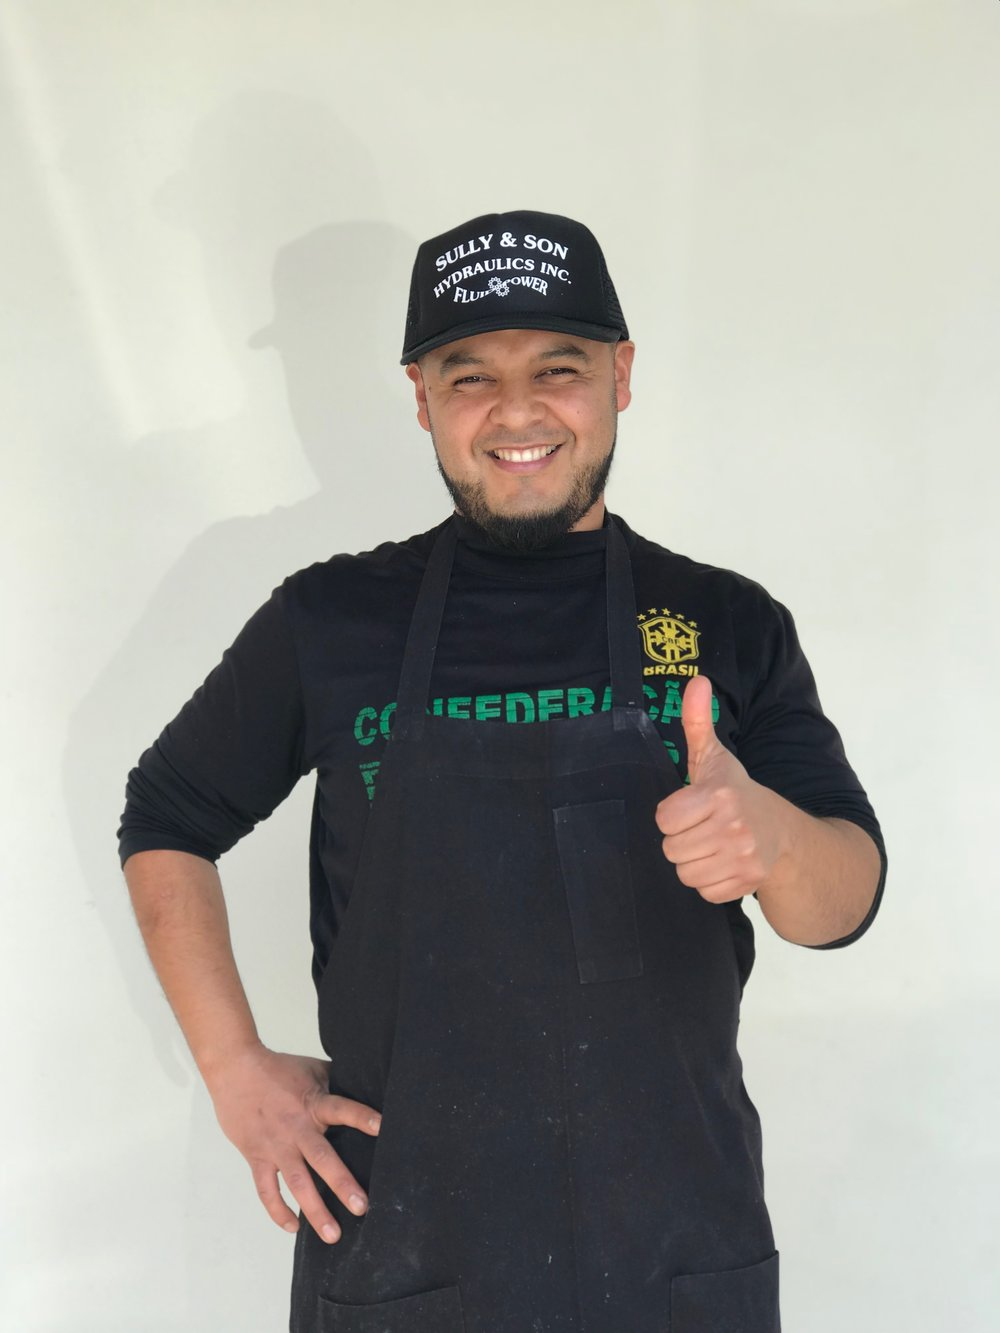 CARLOS  Carlos has worked at the Vitamin Barn for 16 years and loves serving the Malibu and local Pepperdine community. Originally from Honduras, Carlos thinks Malibu is an amazing place to work and enjoys helping customers reach their health goals.